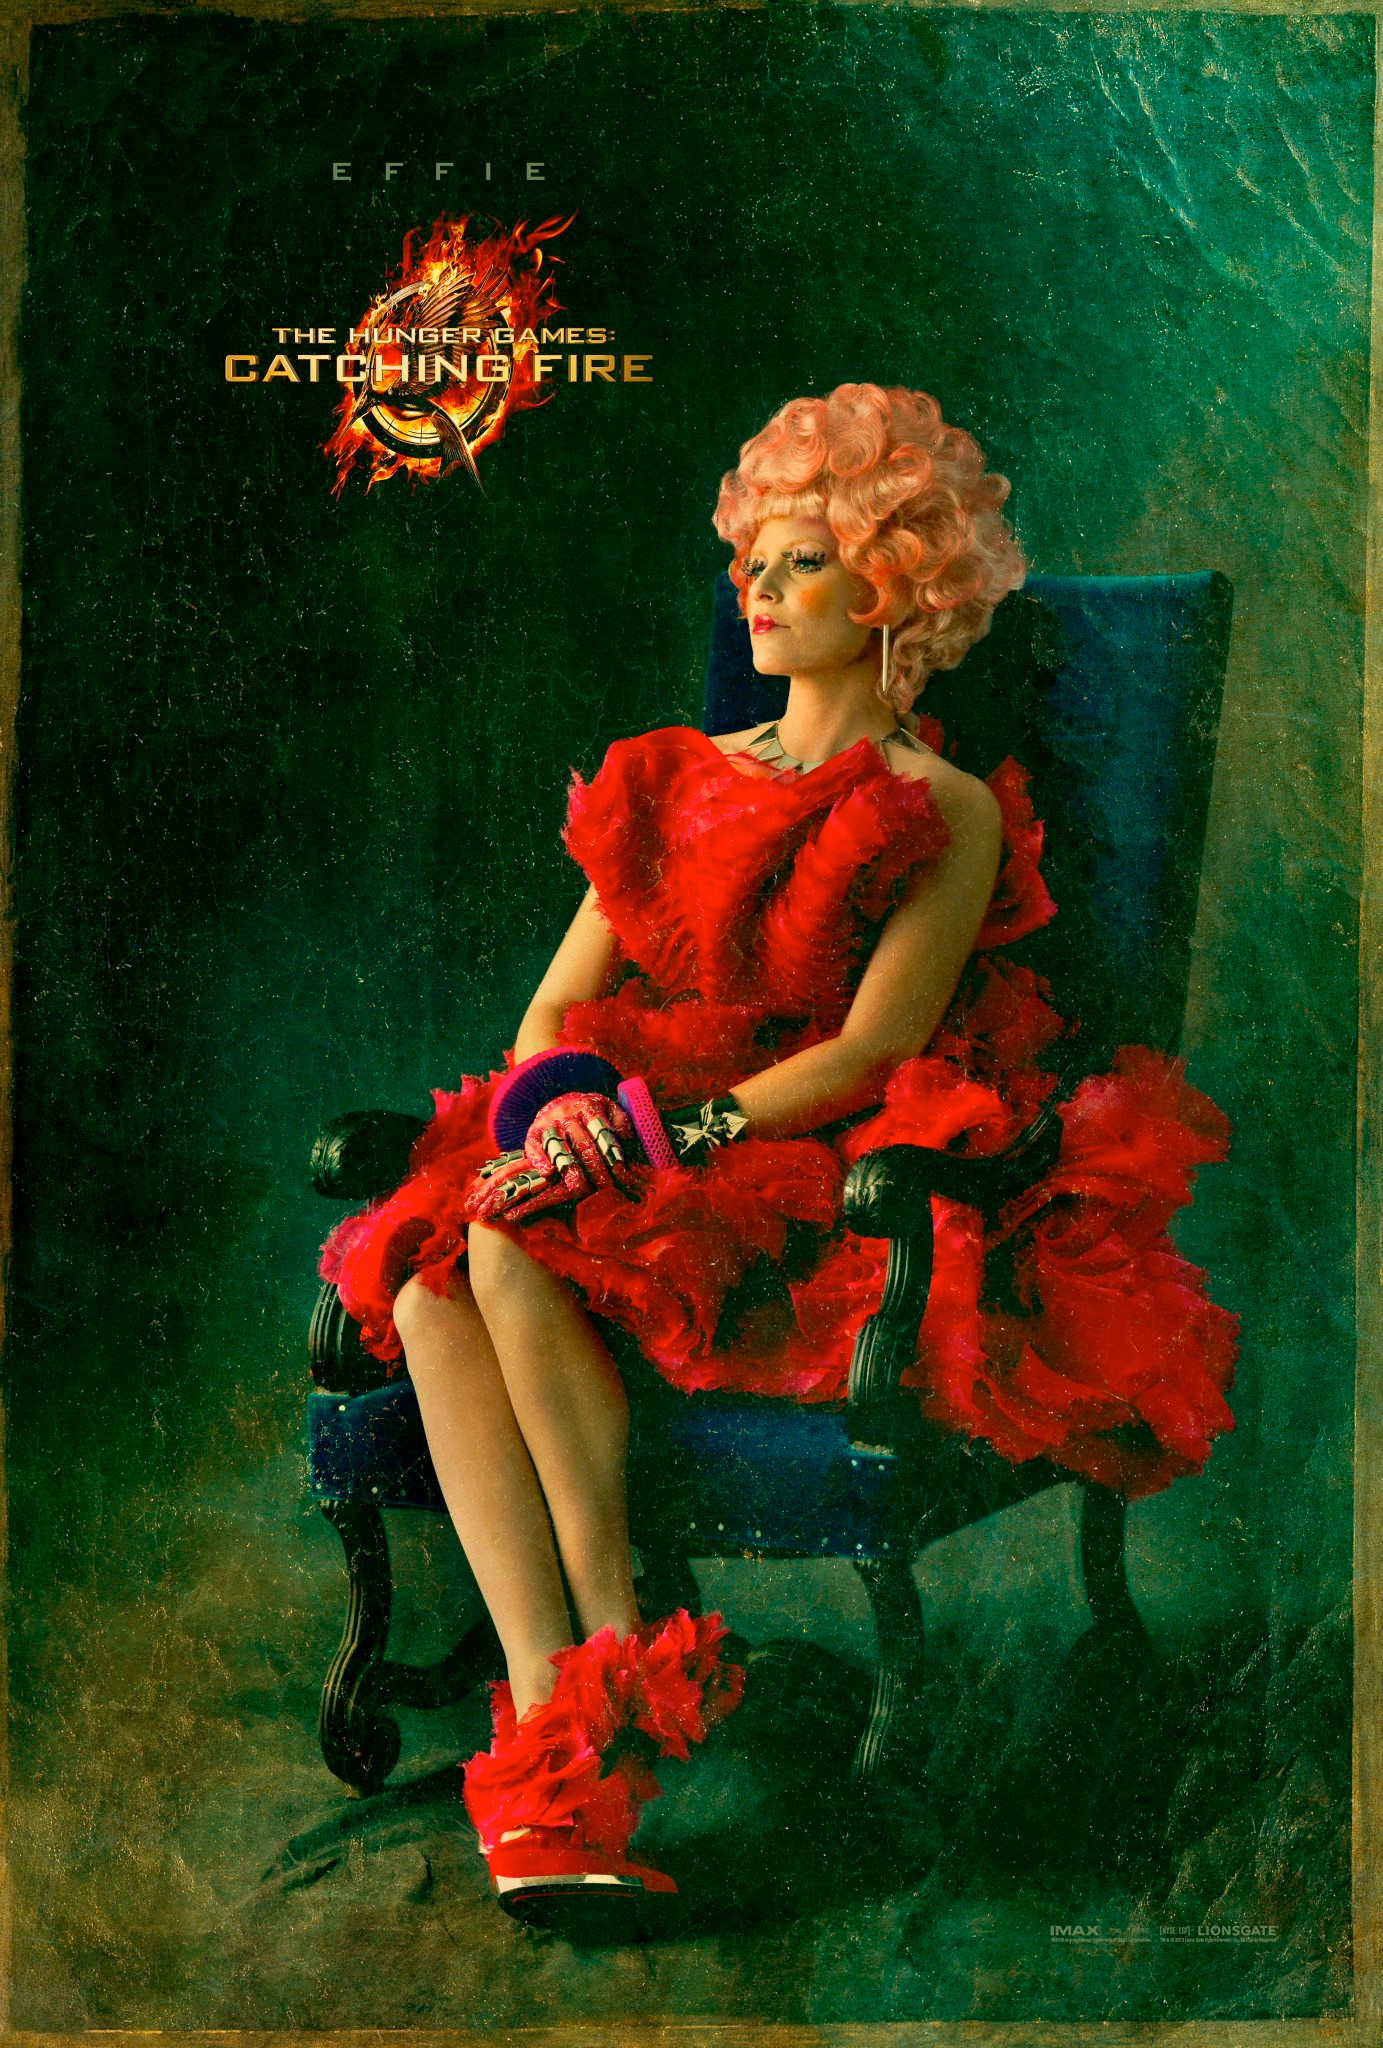 Capitol Couture The Fashion Of Catching Fire Caltv